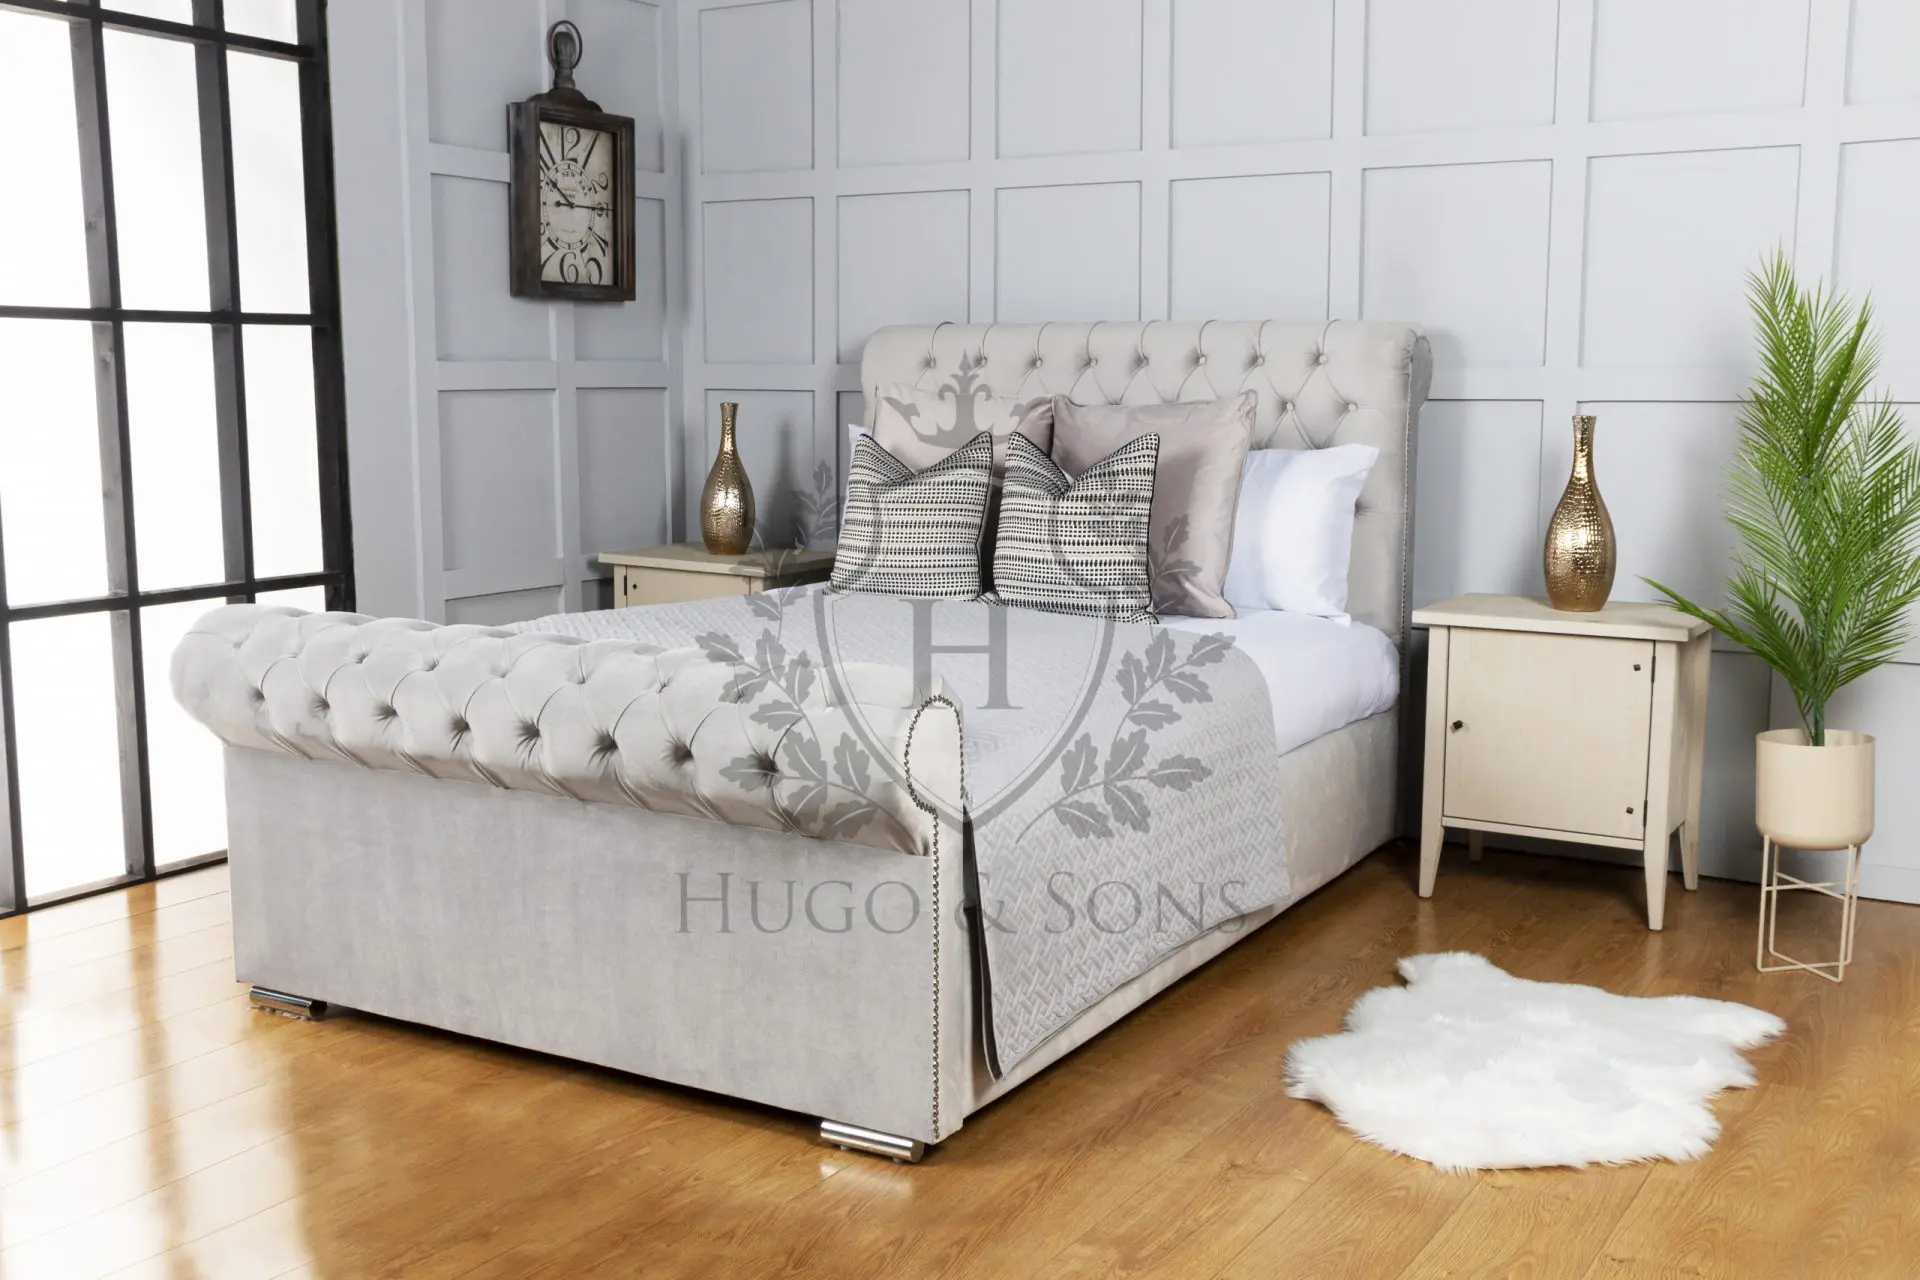 Hugo & Sons image of the Chesterfield Sleigh Bed